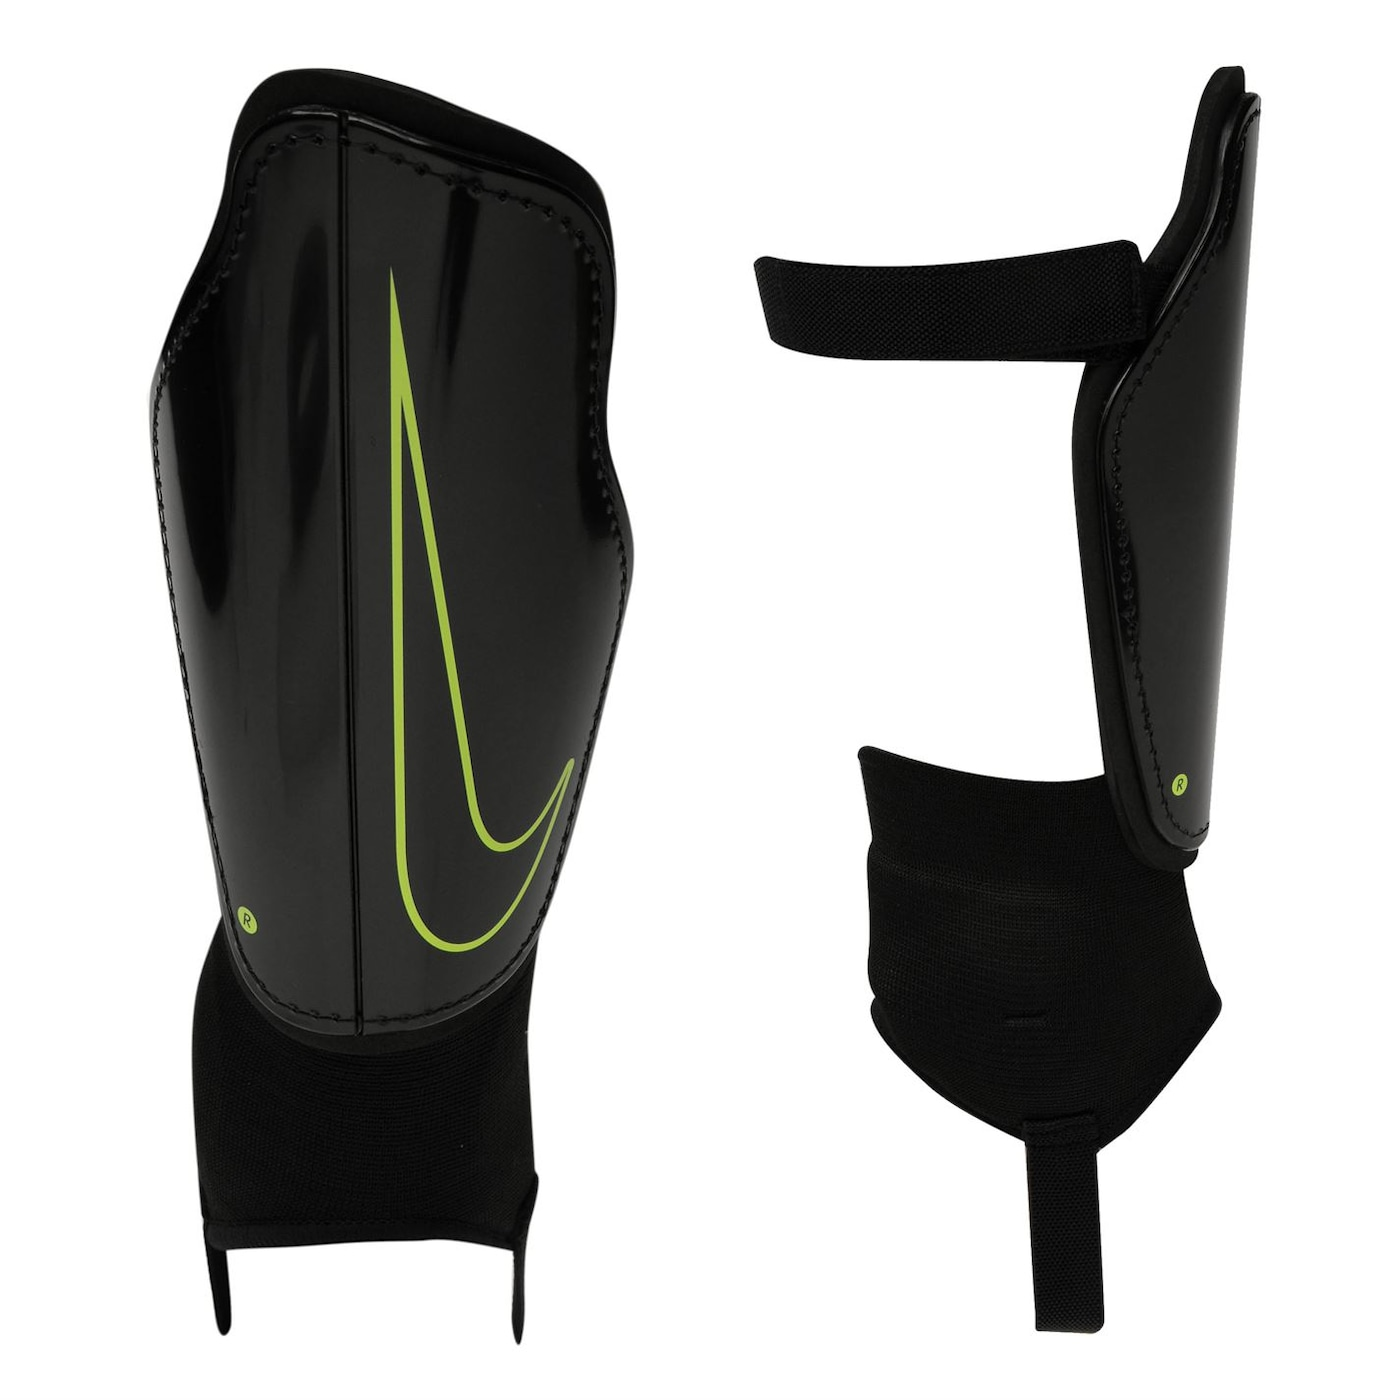 Nike T90 Maximus Shin Guards